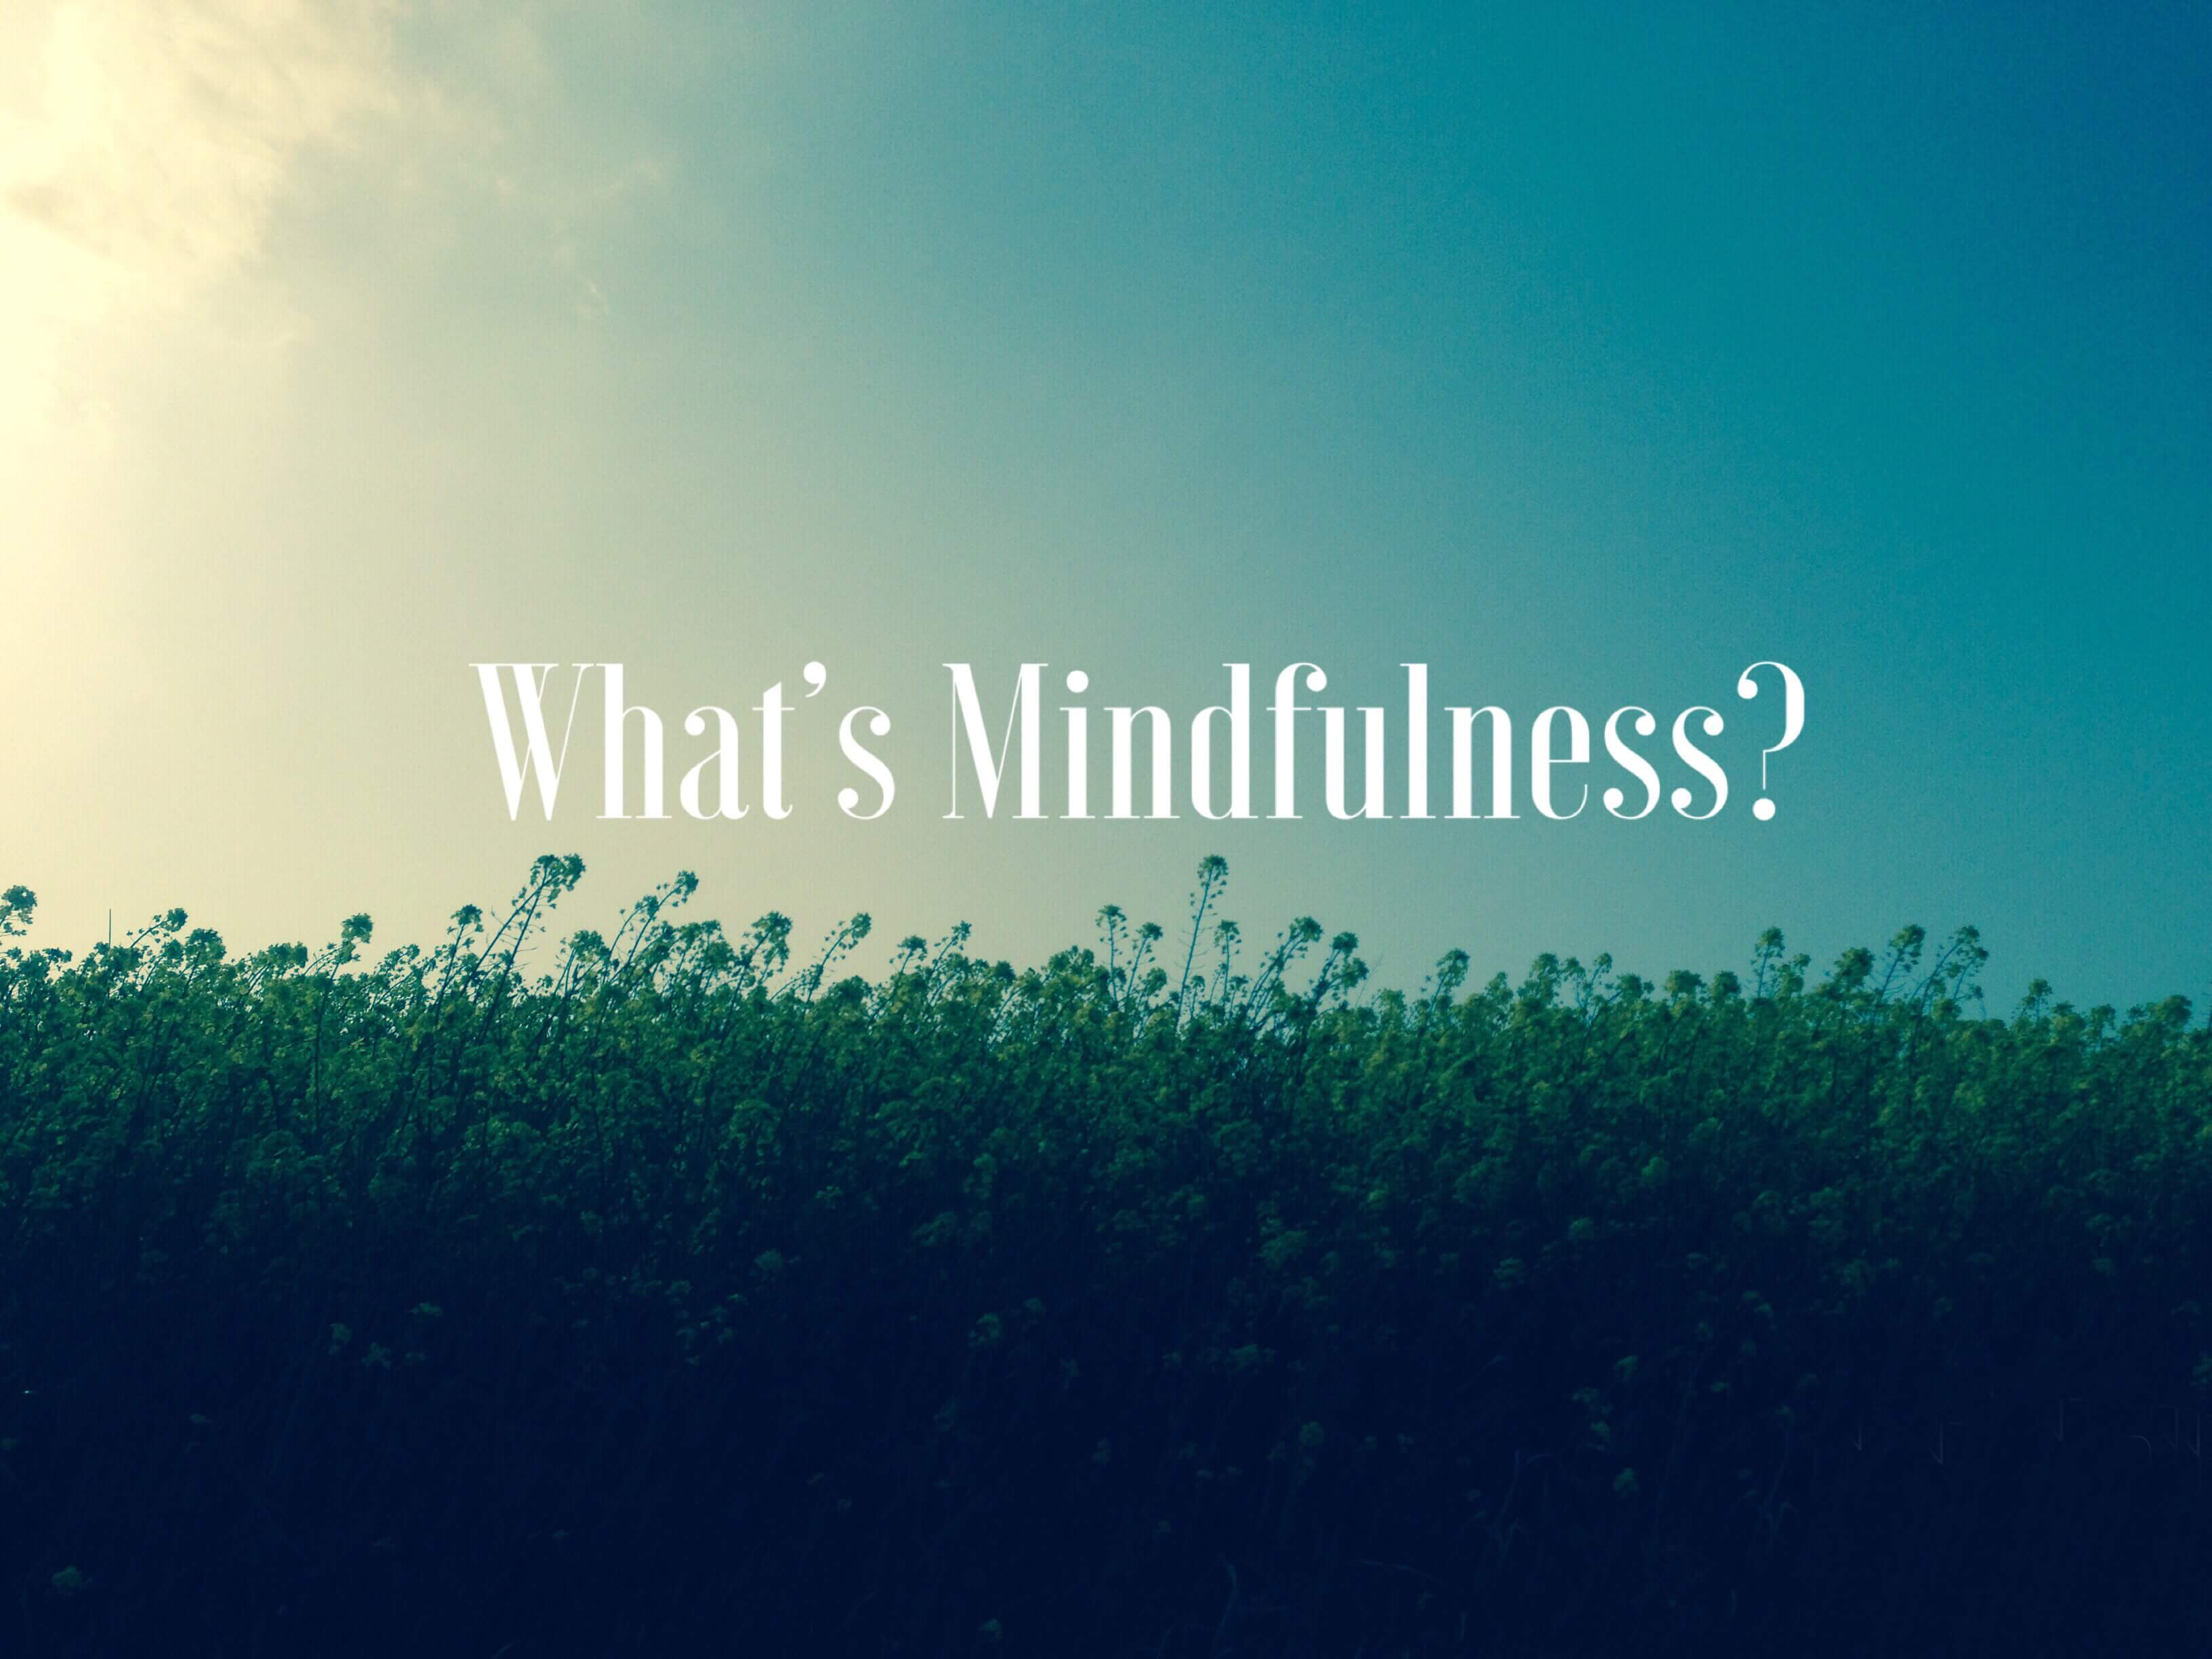 What's Mindfulness?